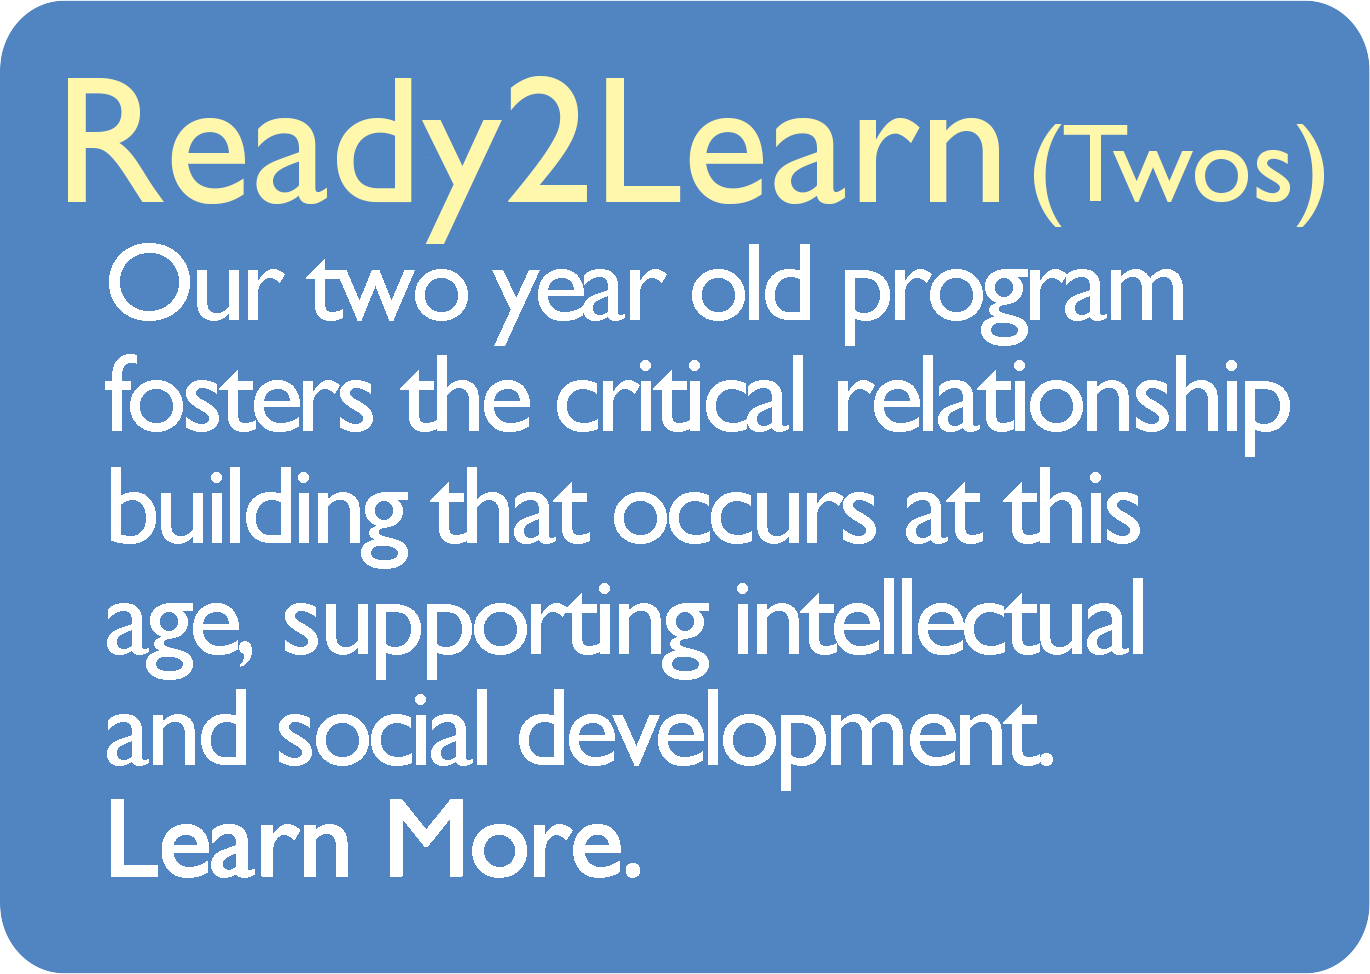 Ready2Learn (Twos) Our two year old program fosters the critical relationship building that occurs at this age, supporting intellectual and social development. Learn More.